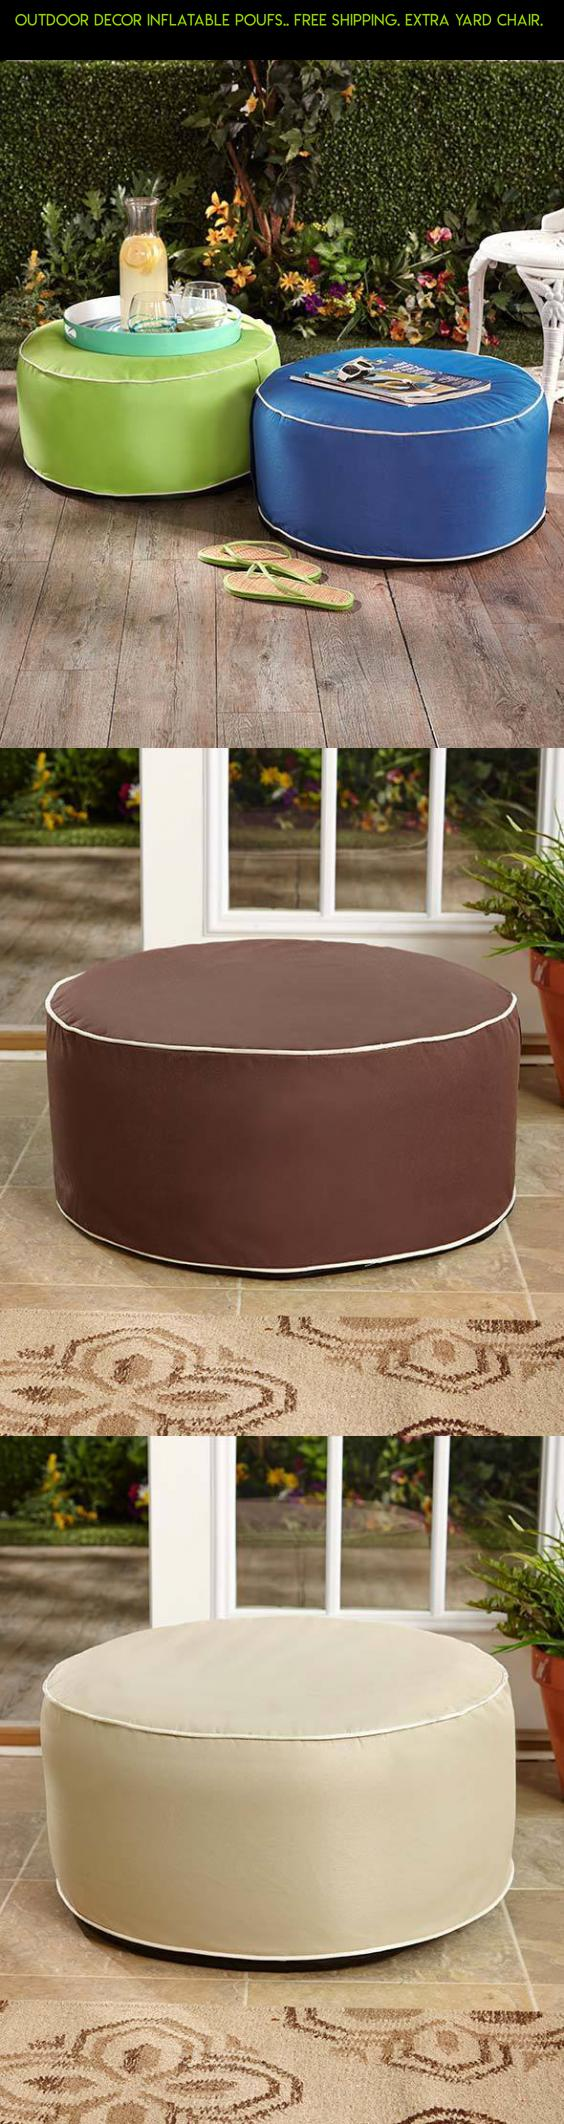 outdoor decor inflatable poufs.. free shipping. extra yard chair